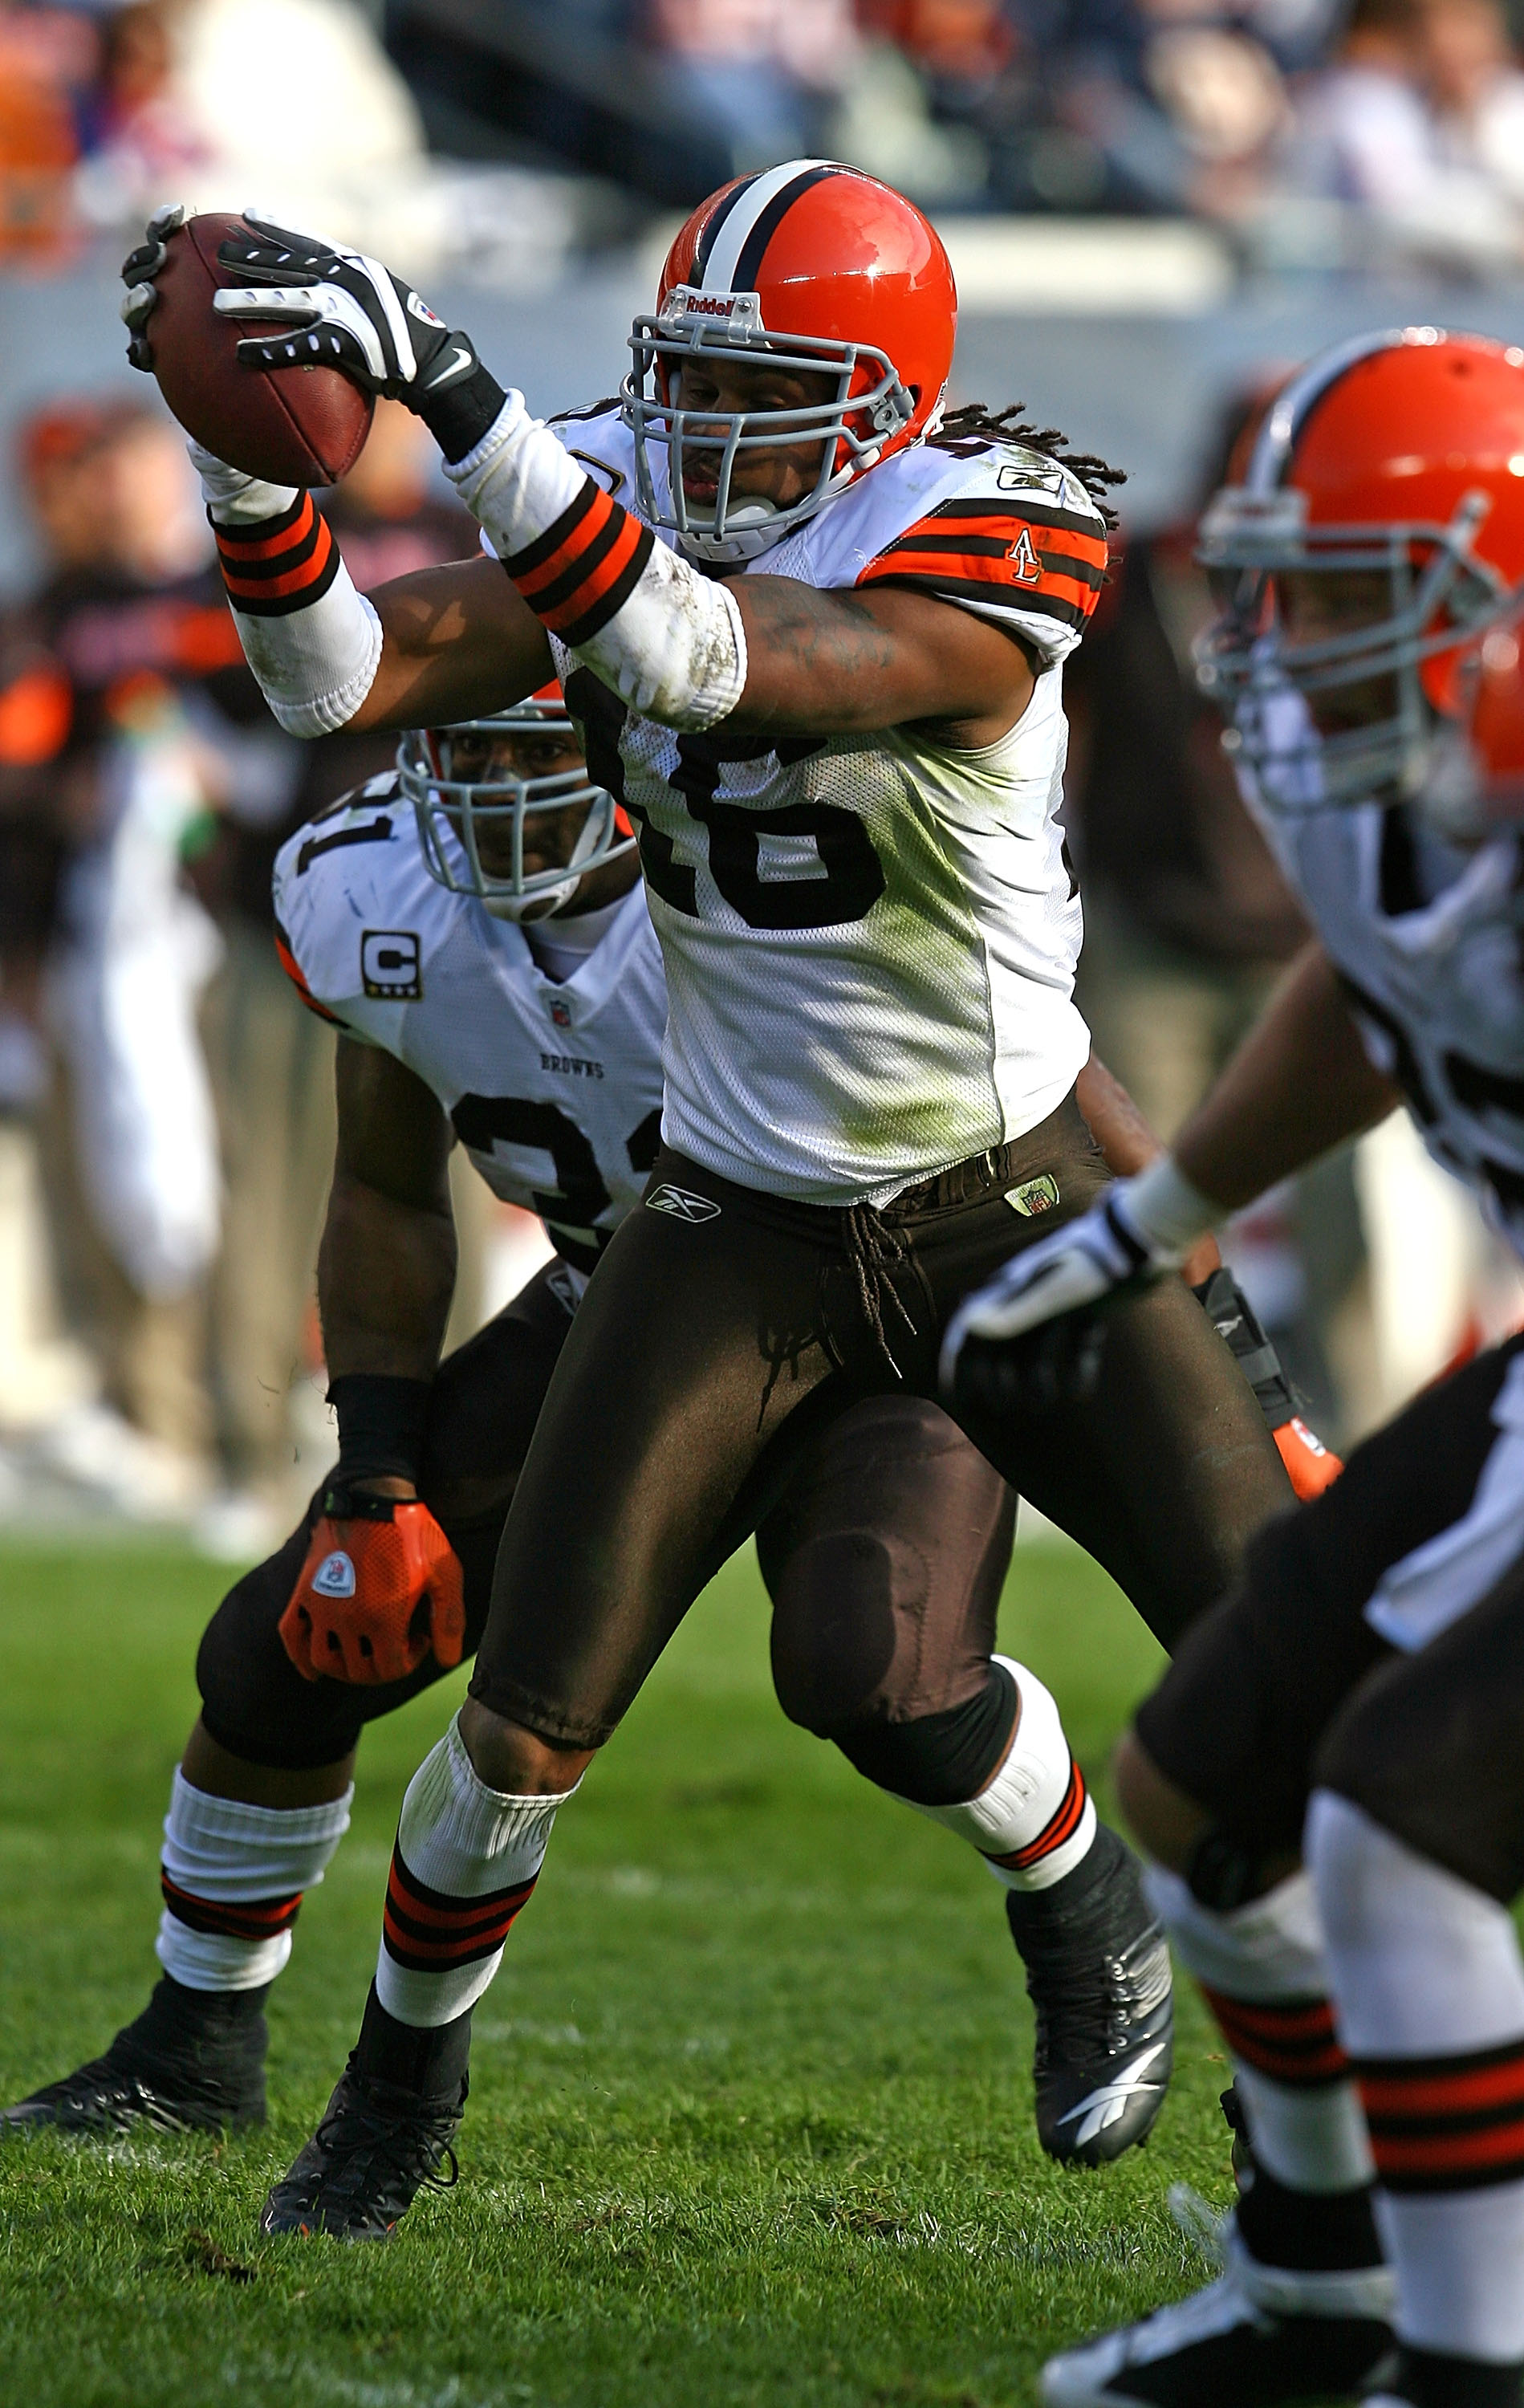 CHICAGO - NOVEMBER 01: Joshua Cribbs #16 of the Cleveland Browns takes the snap from center in the 'wildcat' formation against the Chicago Bears at Soldier Field on November 1, 2009 in Chicago, Illinois. The Bears defeated the Browns 30-6. (Photo by Jonat